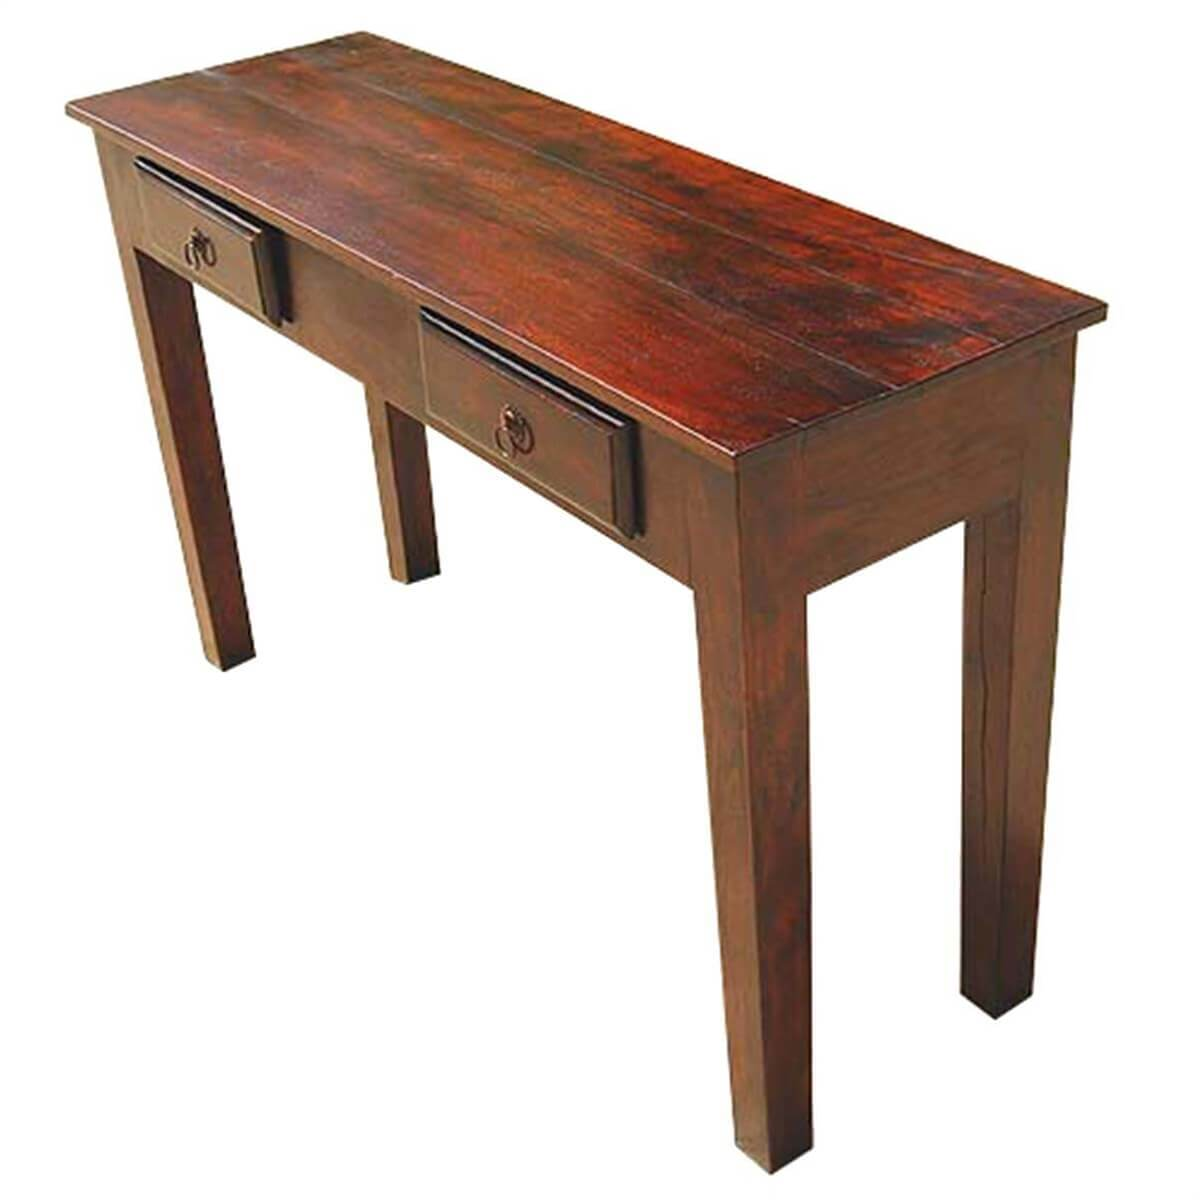 Foyer Table With Storage : Wood storage drawers console hall entry way foyer table